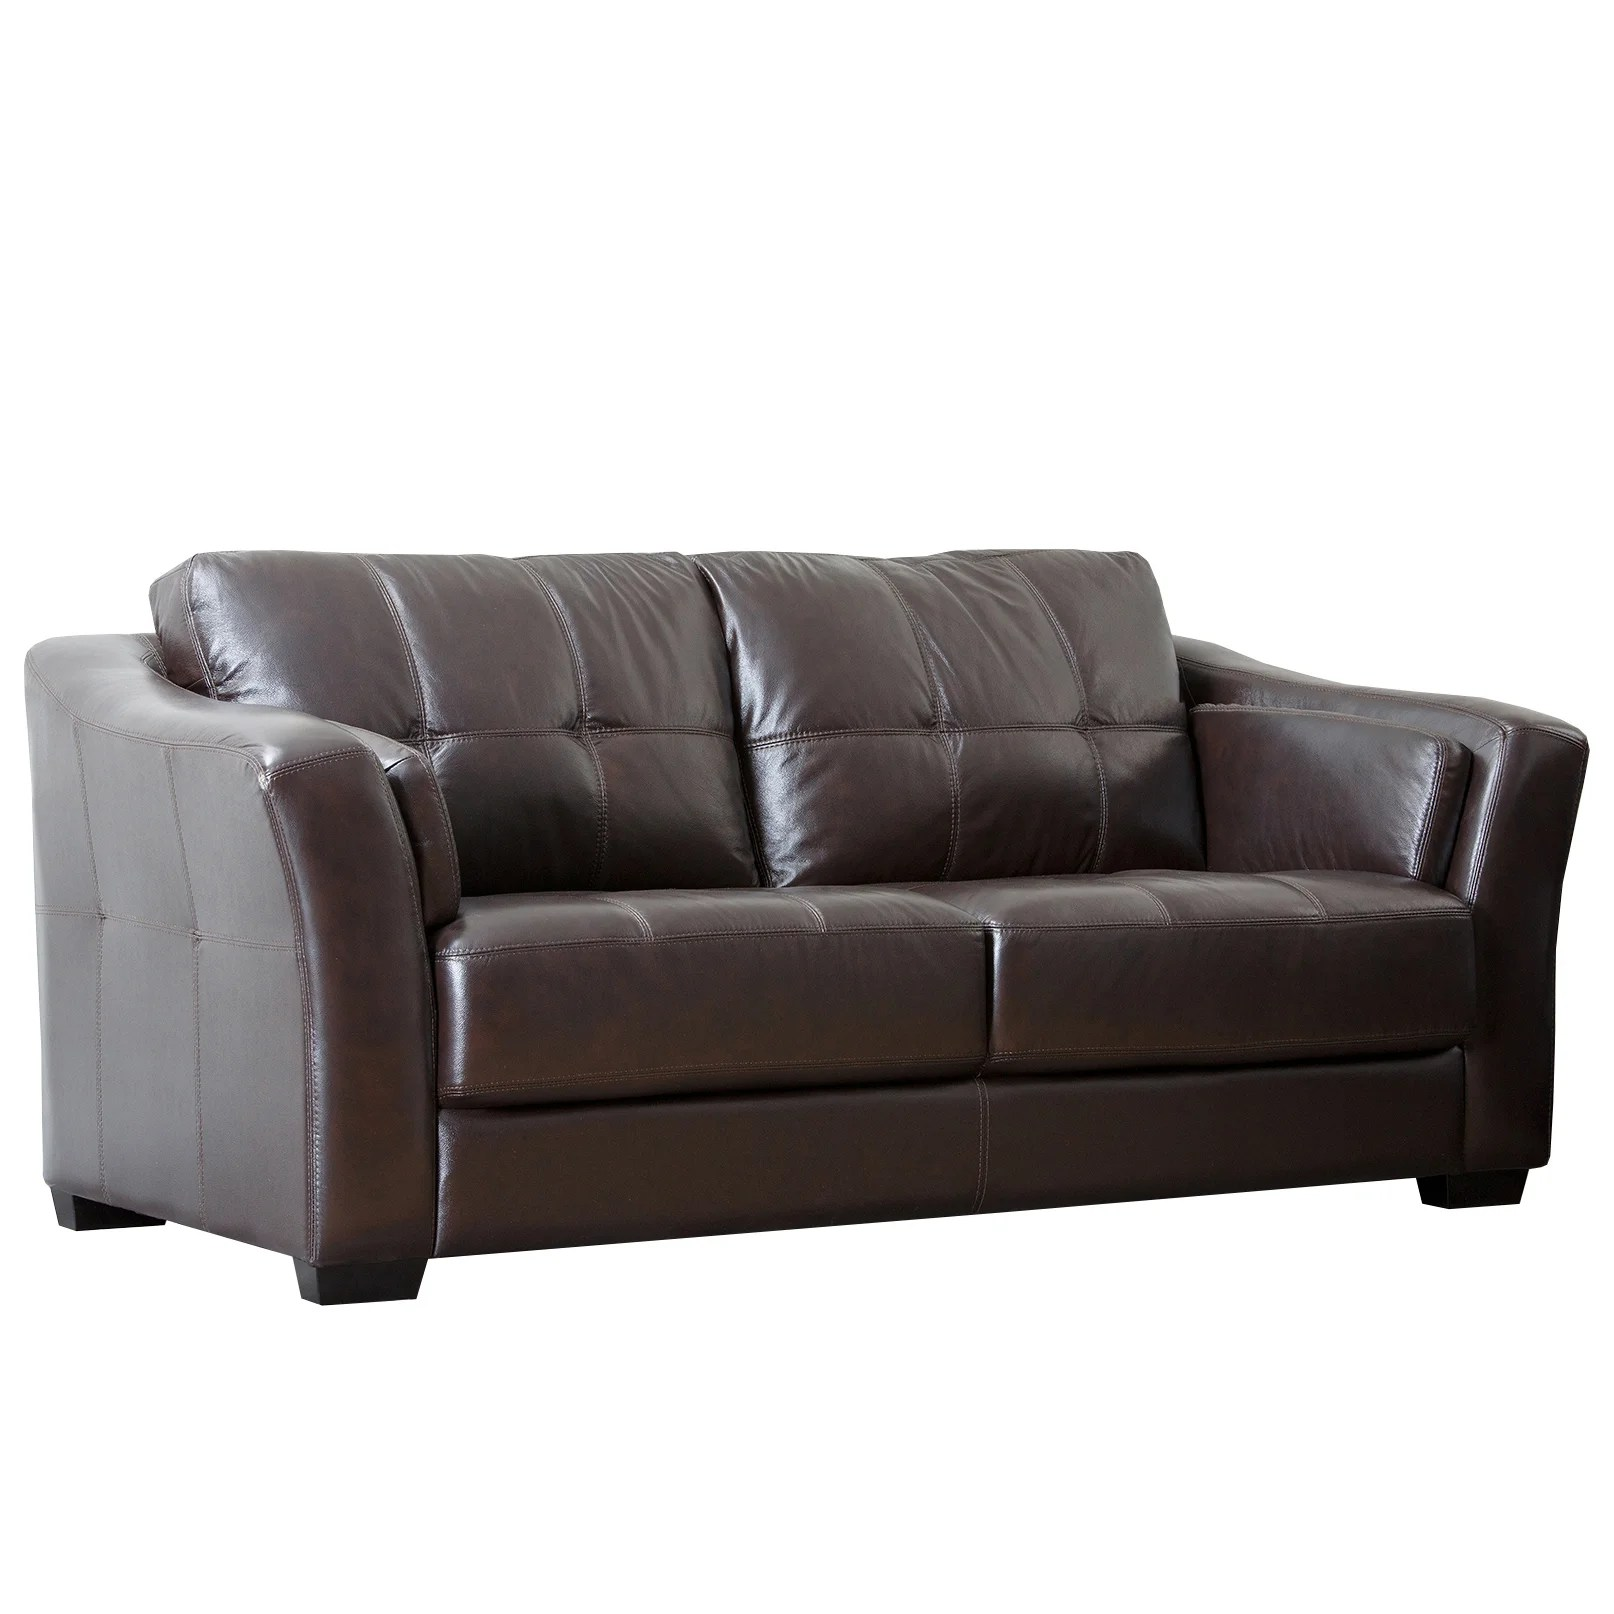 Marvelous Abbyson Living Sofa Reviews Okaycreations Net